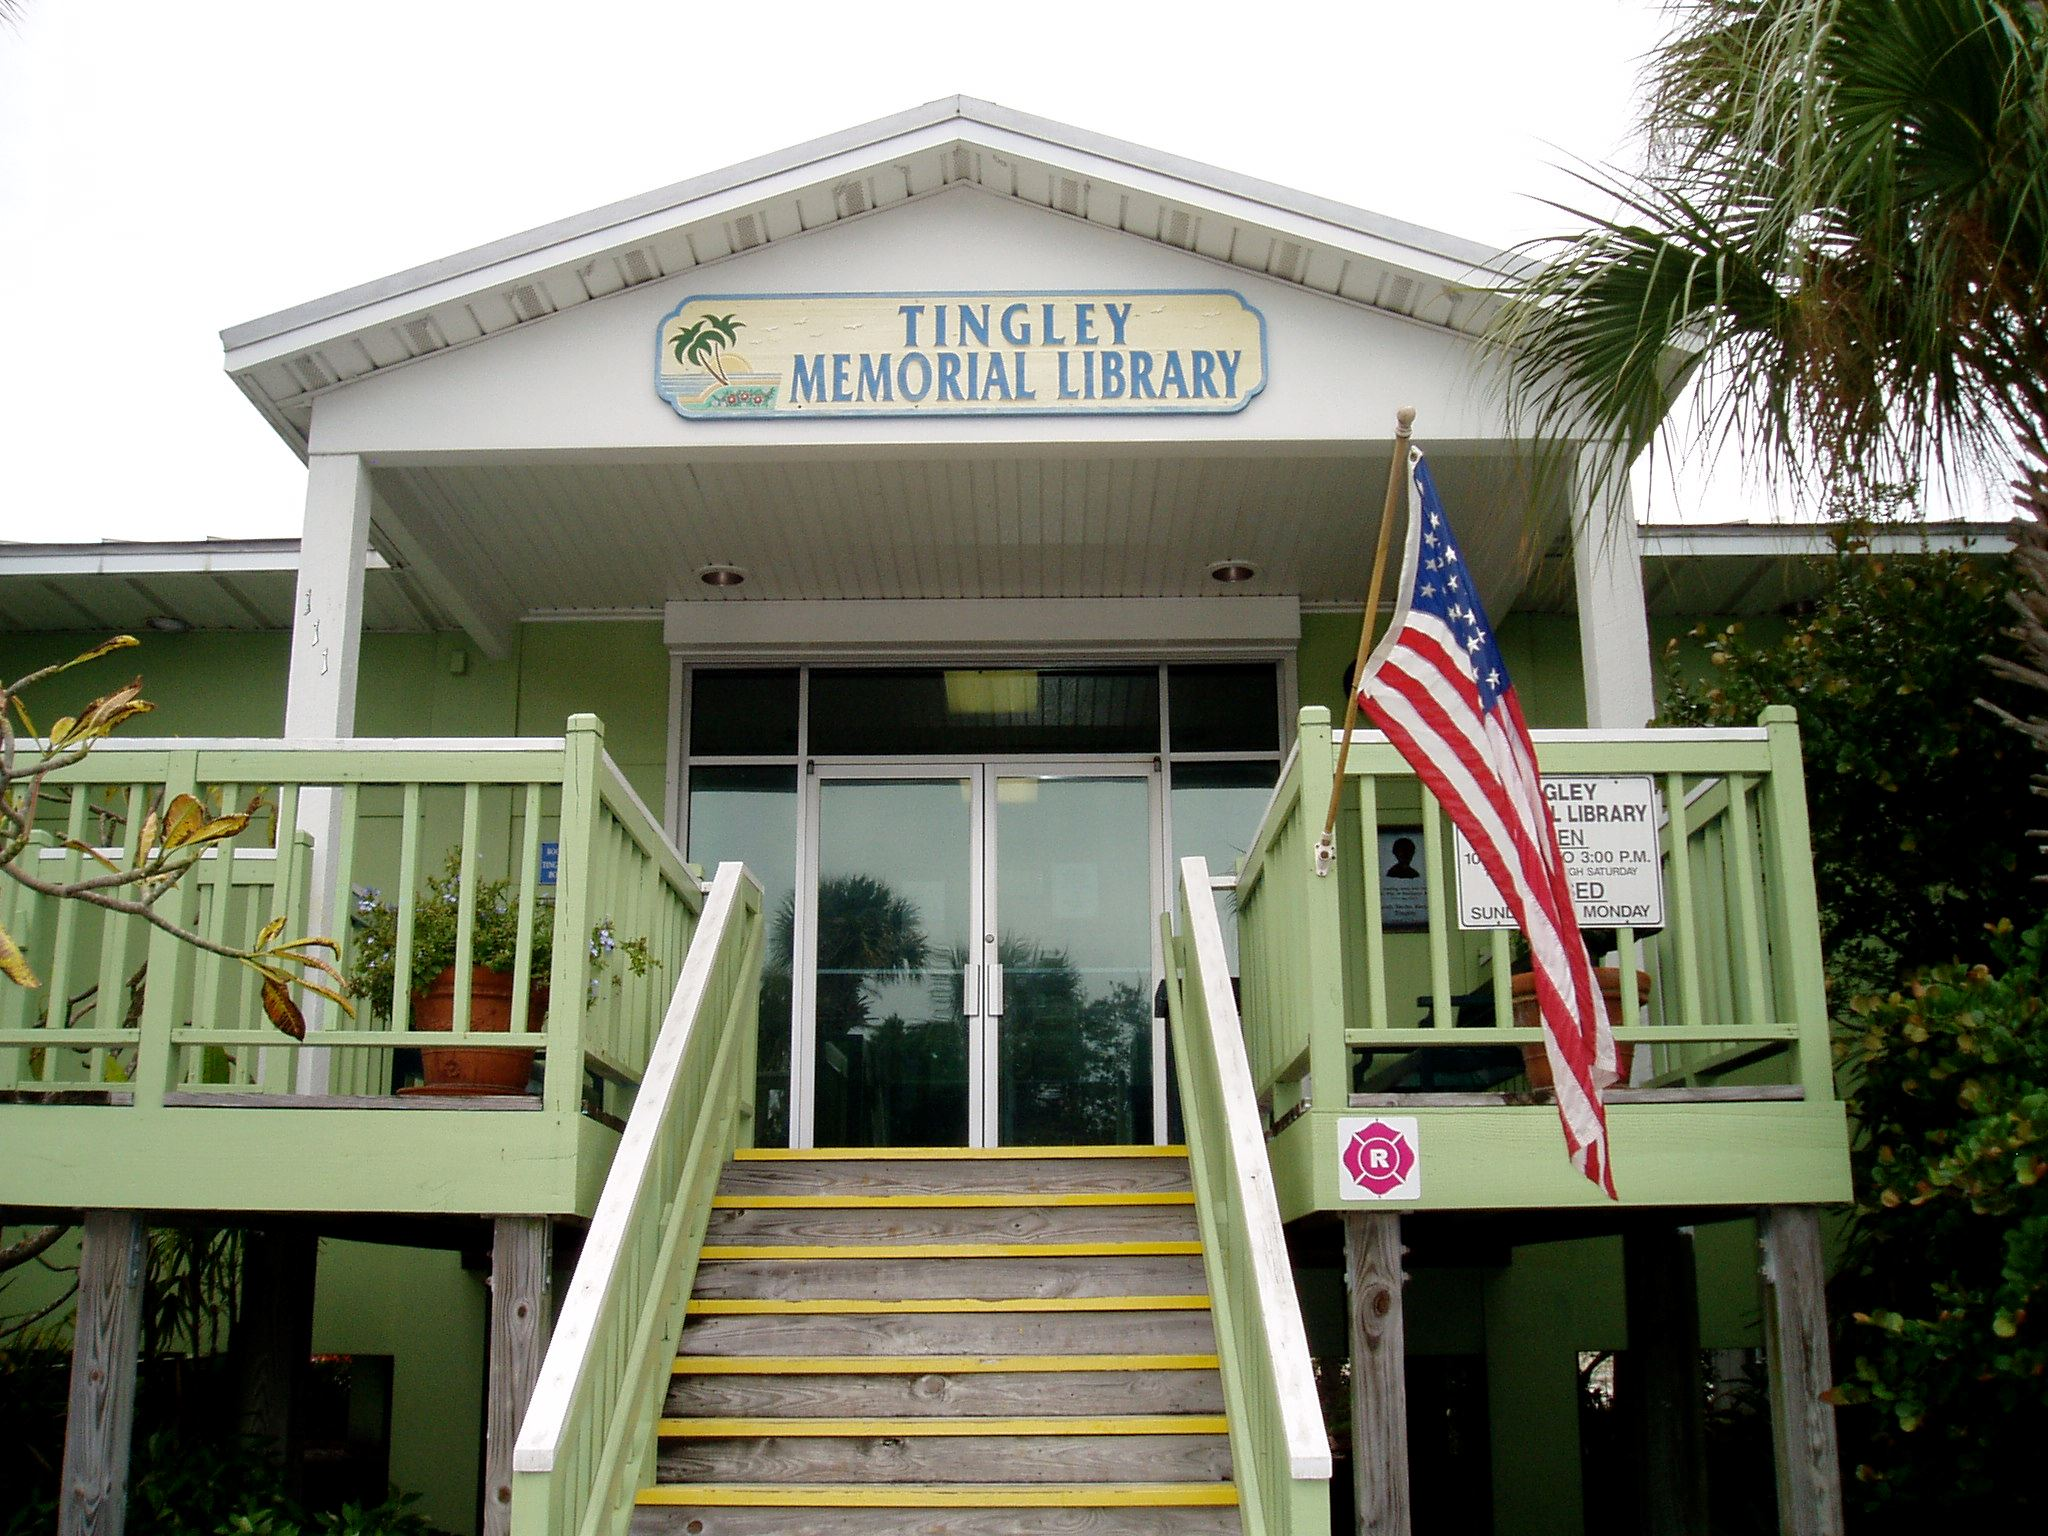 Entrance to Tingley Memorial Library